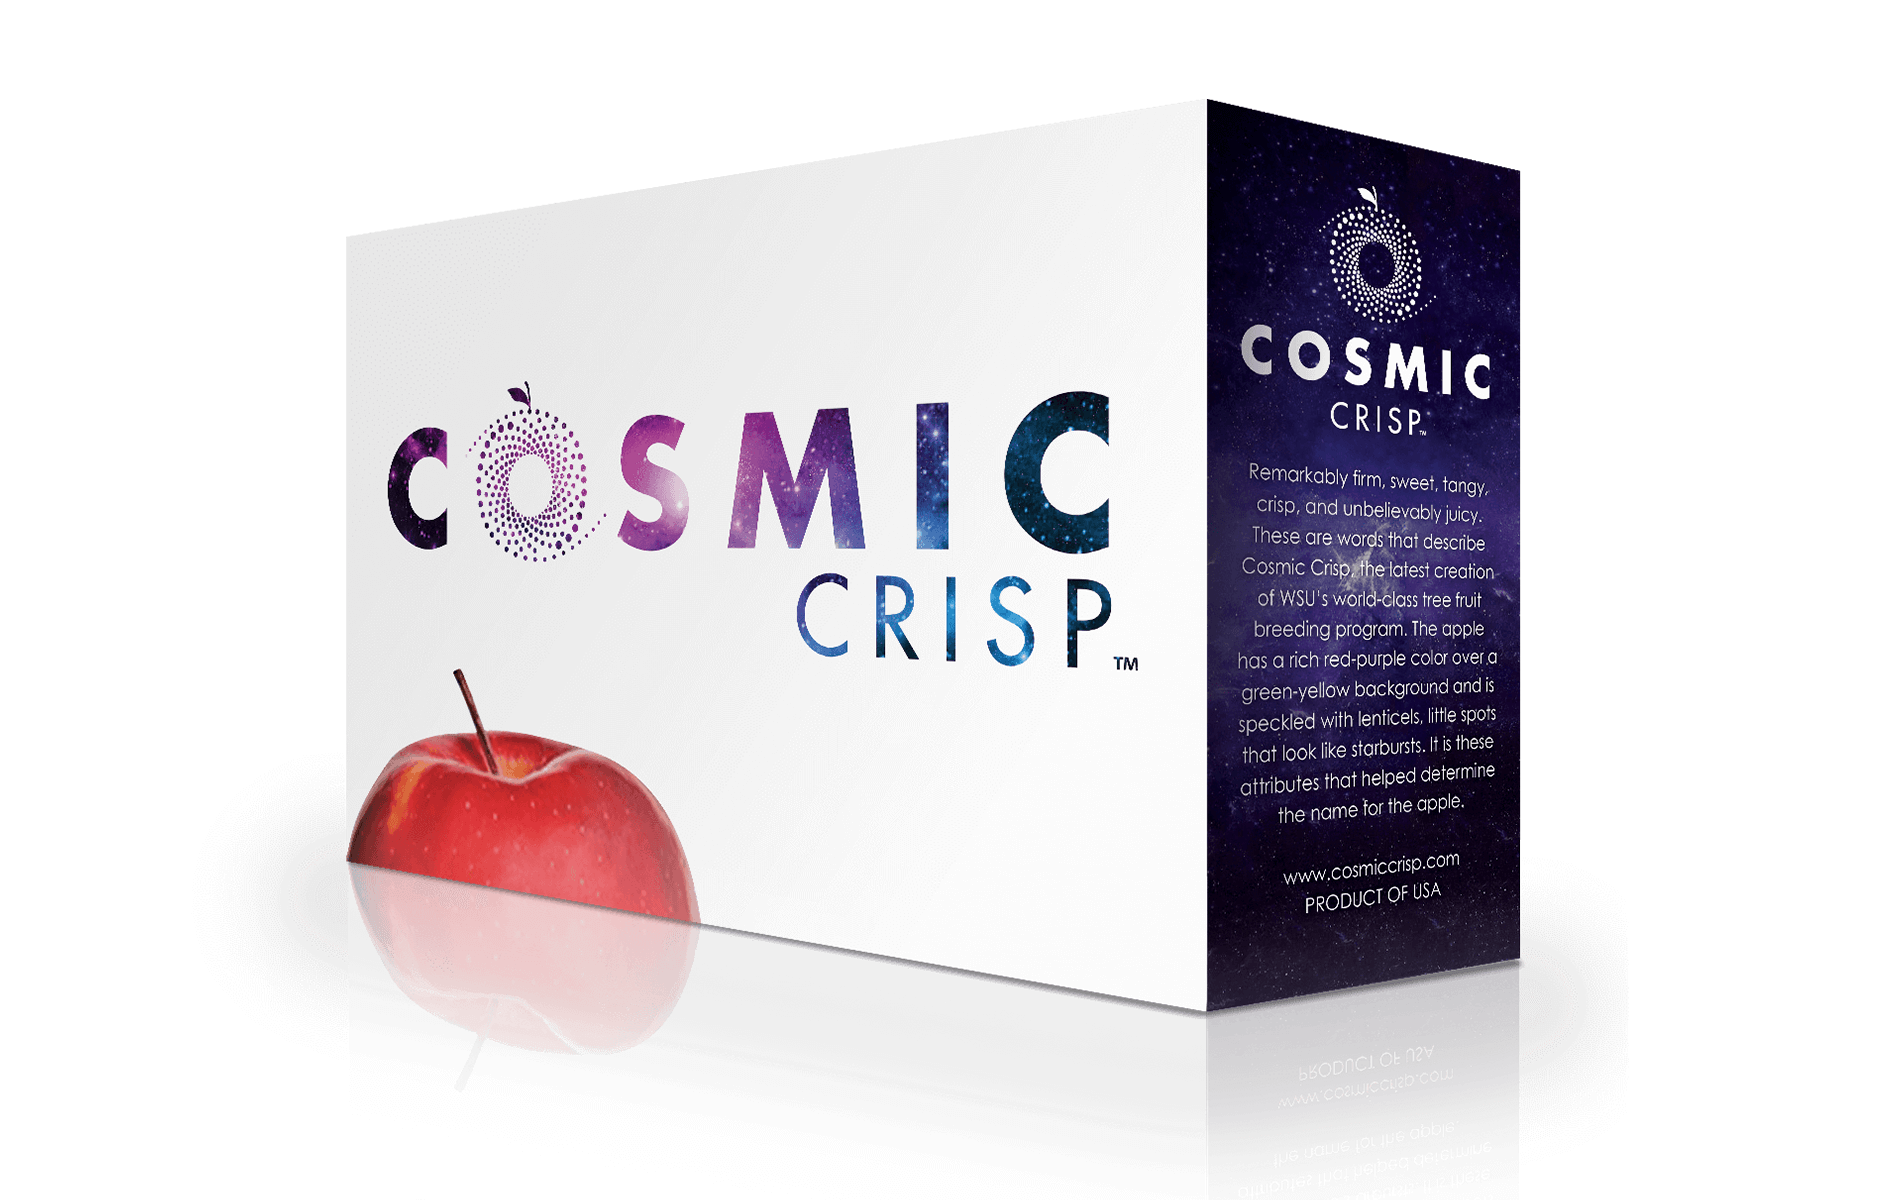 4 Box Sleeve (1)  • Fits over stack of four 40 lb. apple boxes, stacked two boxes high • Full logo on white front panel with variety text and website on cosmic graphic side panel